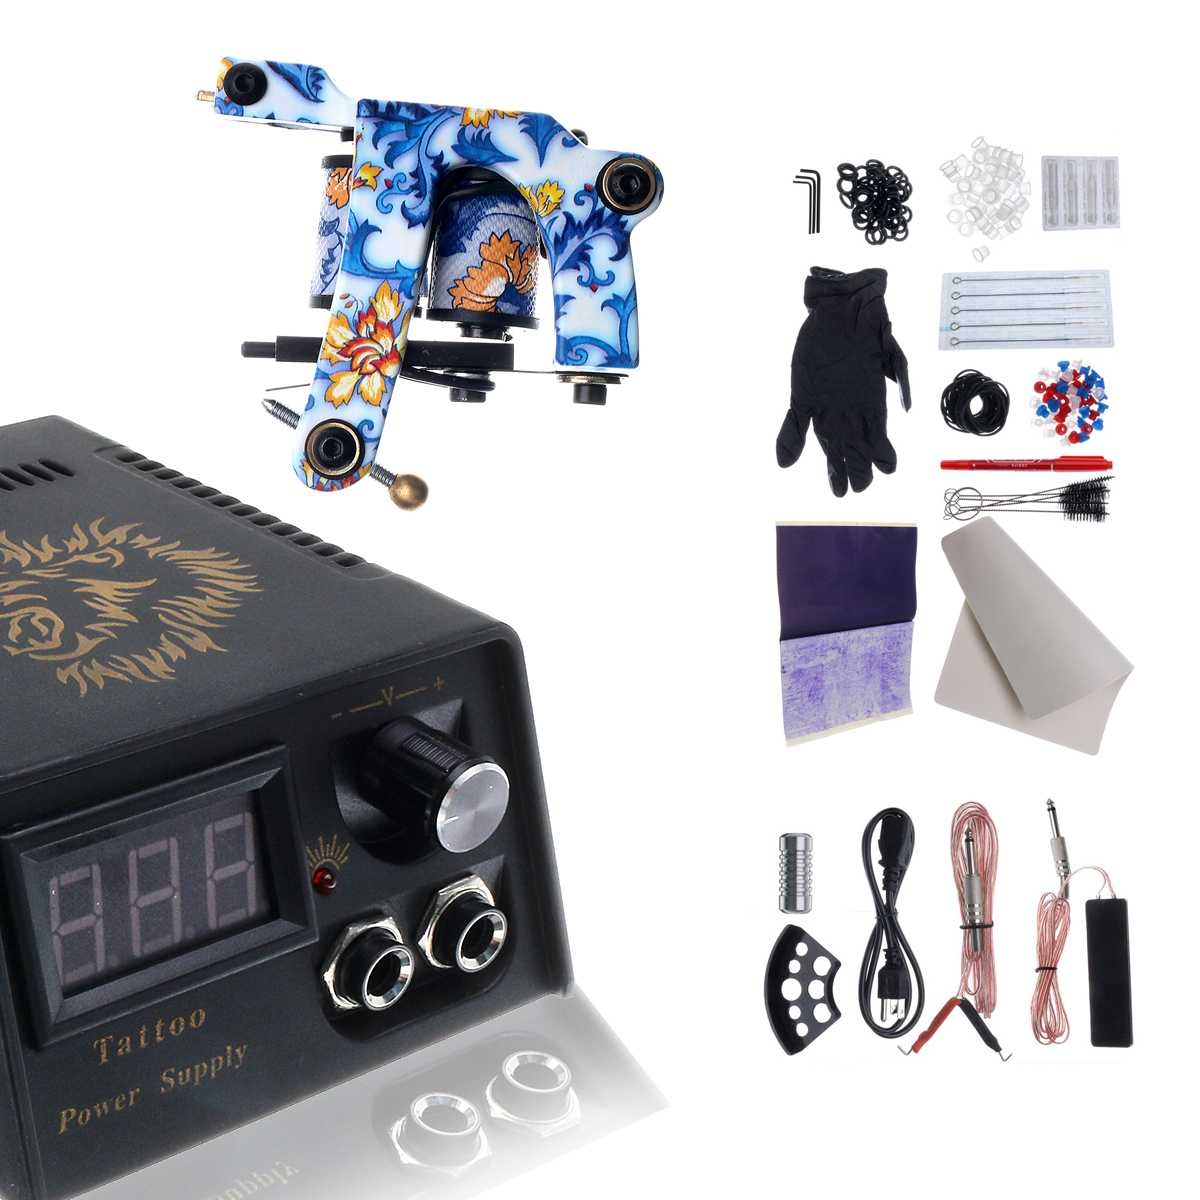 Professional Tattoo Kit 2 Machine for Gun Color Inks Power Supply Complete Tattoo Kits High QualityProfessional Tattoo Kit 2 Machine for Gun Color Inks Power Supply Complete Tattoo Kits High Quality